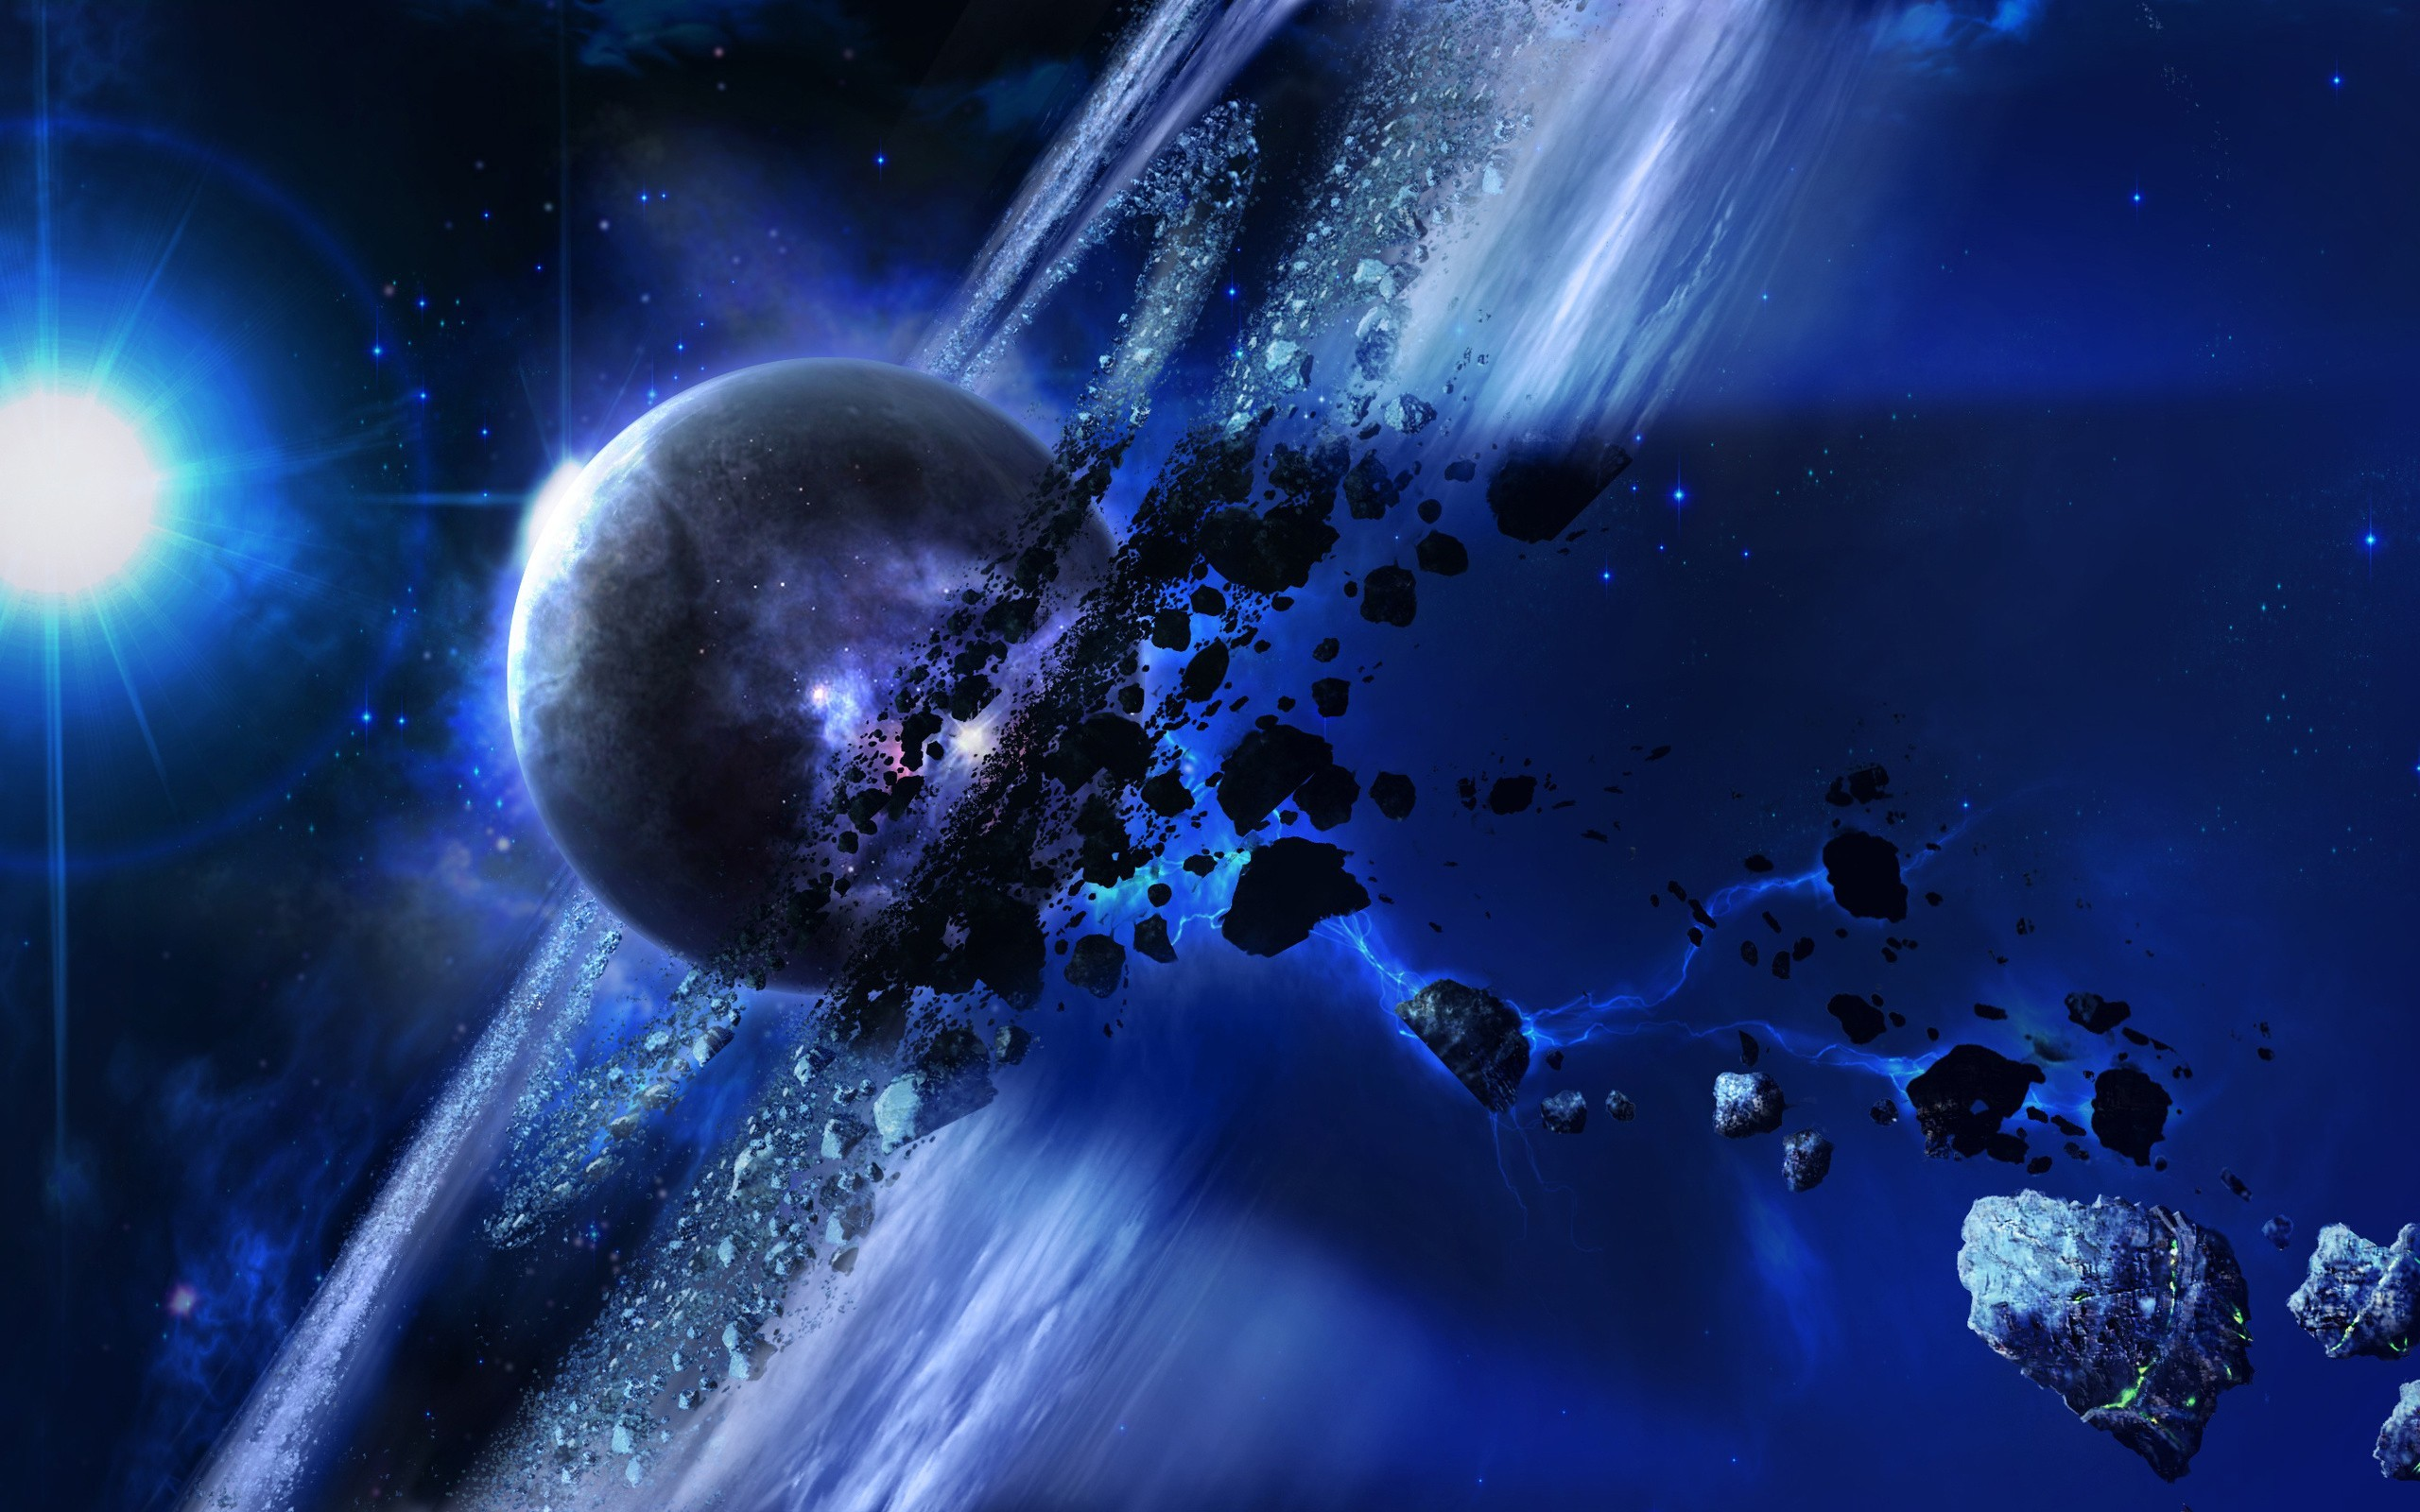 Outer Space Wallpaper Outer, Space, Planets, Artwork